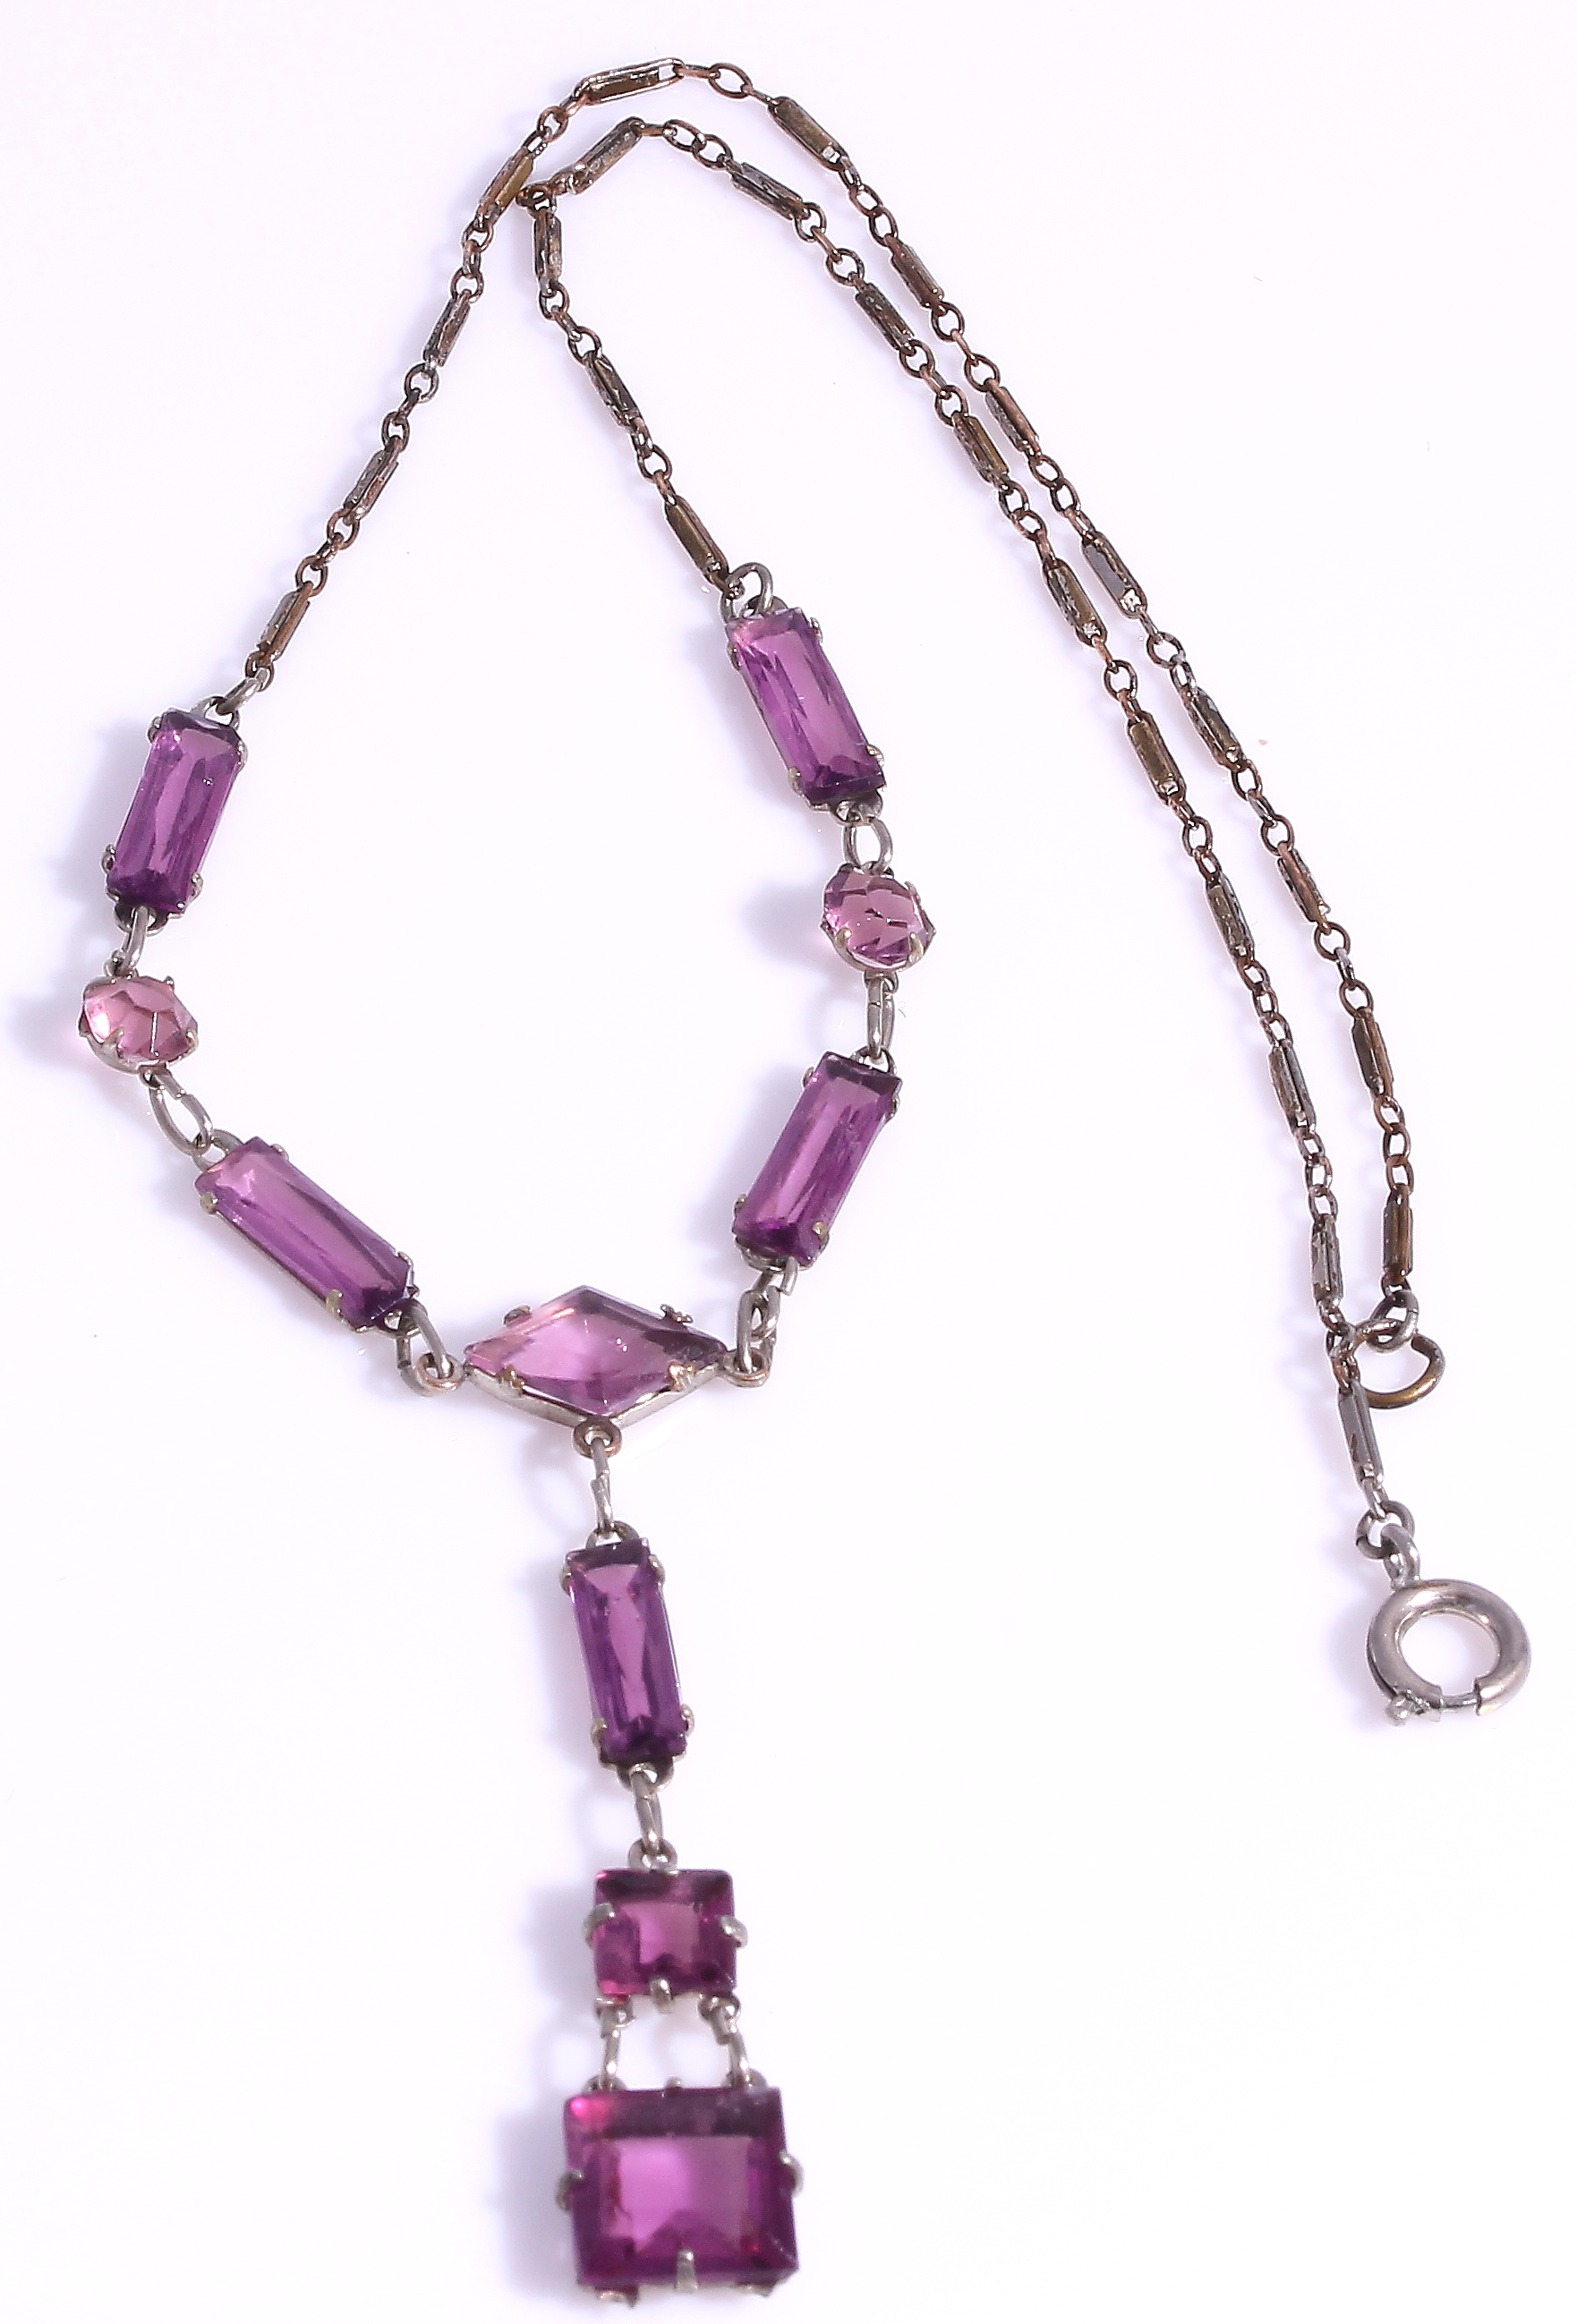 Art Deco Amethyst Colored Open Back Crystal Necklace Sold